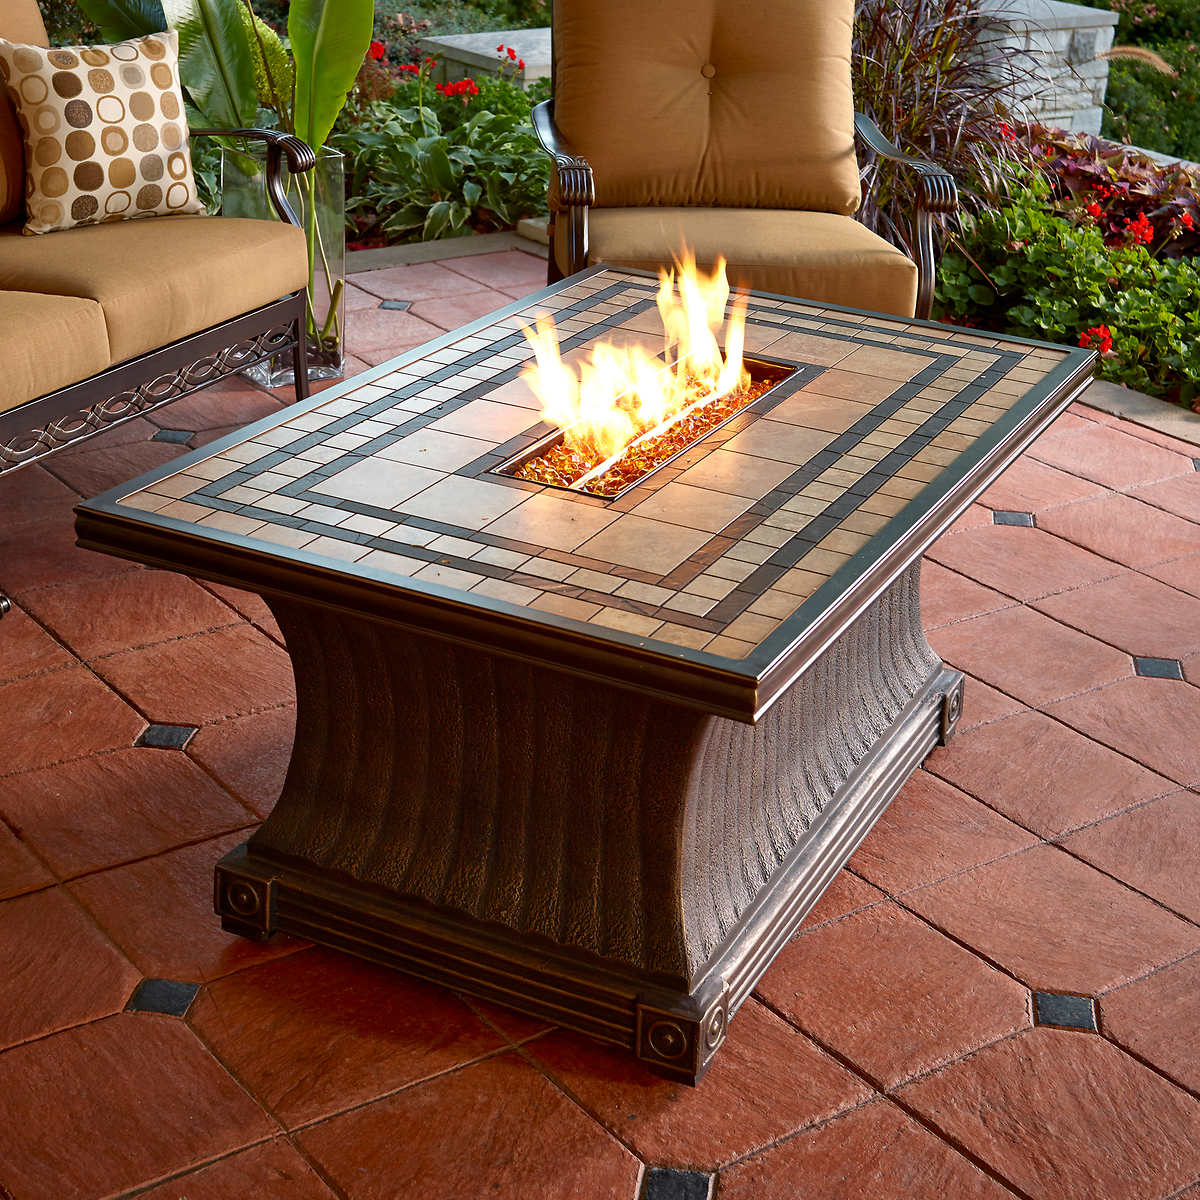 Glen Manor Propane Fire Pit Table - Fire Pit